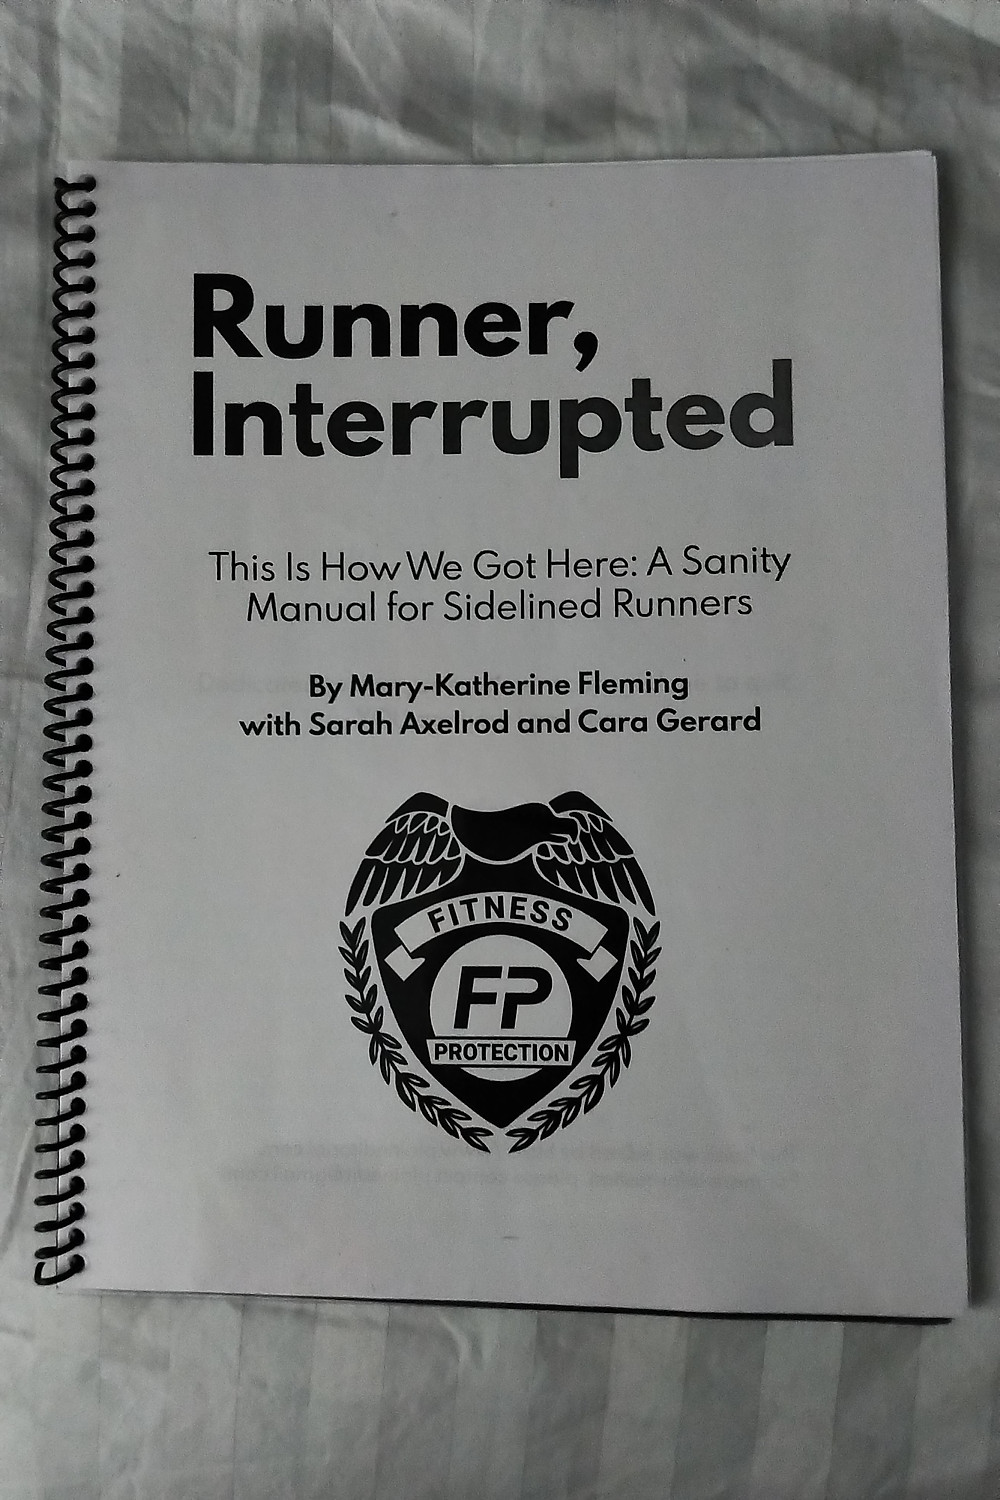 Runner, Interrupted Activity Book MK Fleming Fitness Protection Program